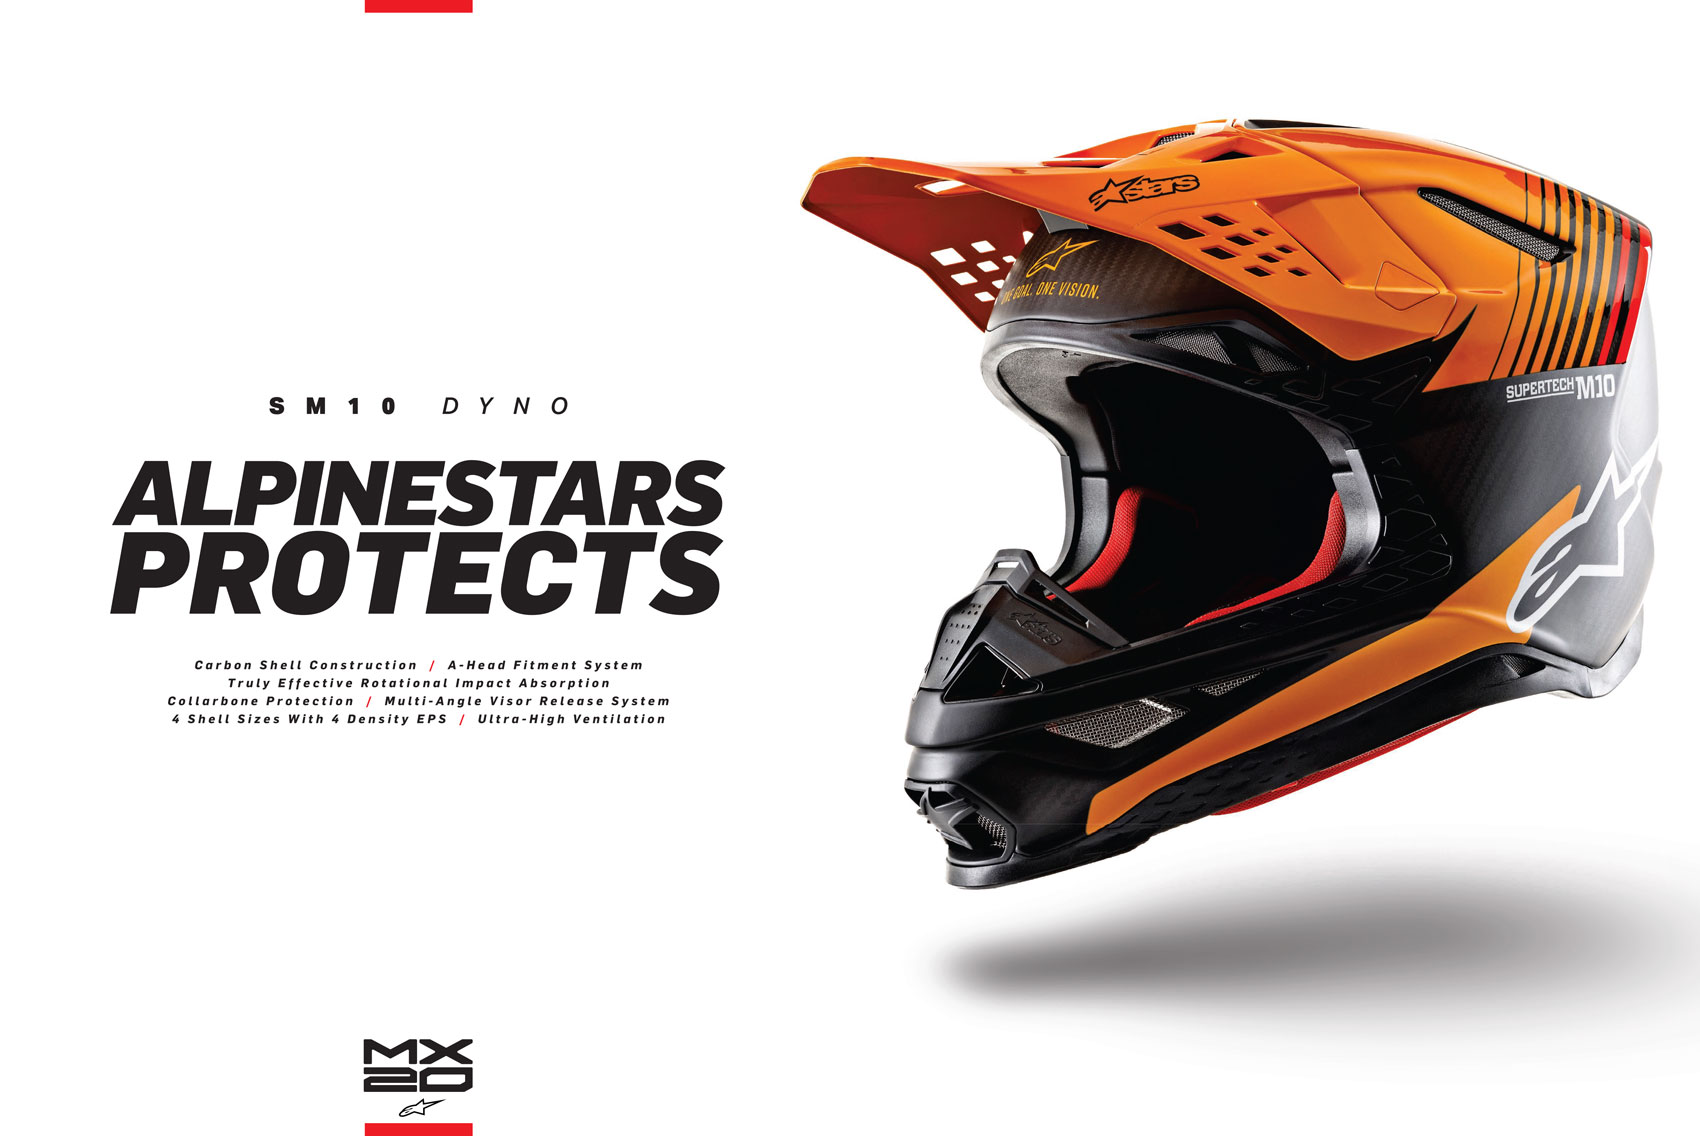 Racer X November 2019 - Alpine Stars Advertisement